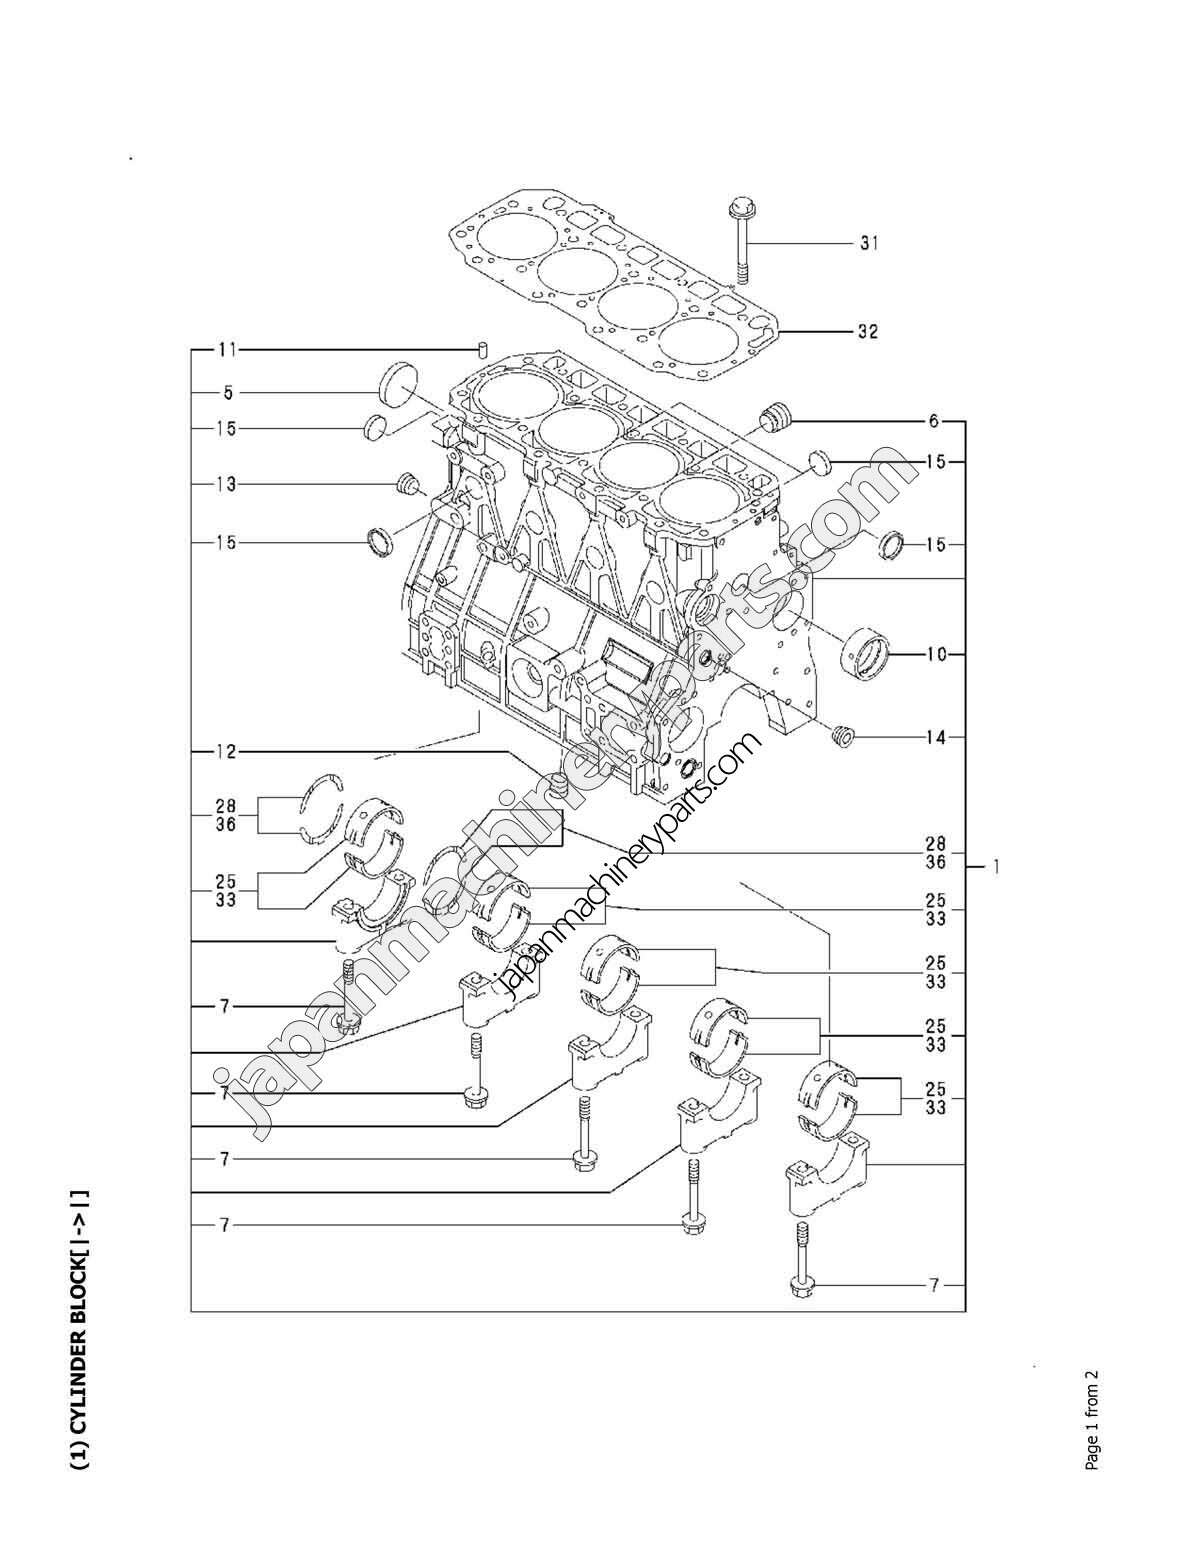 2910 Ford Tractor Wiring Diagram Expert Schematics External Regulator Trusted 12v